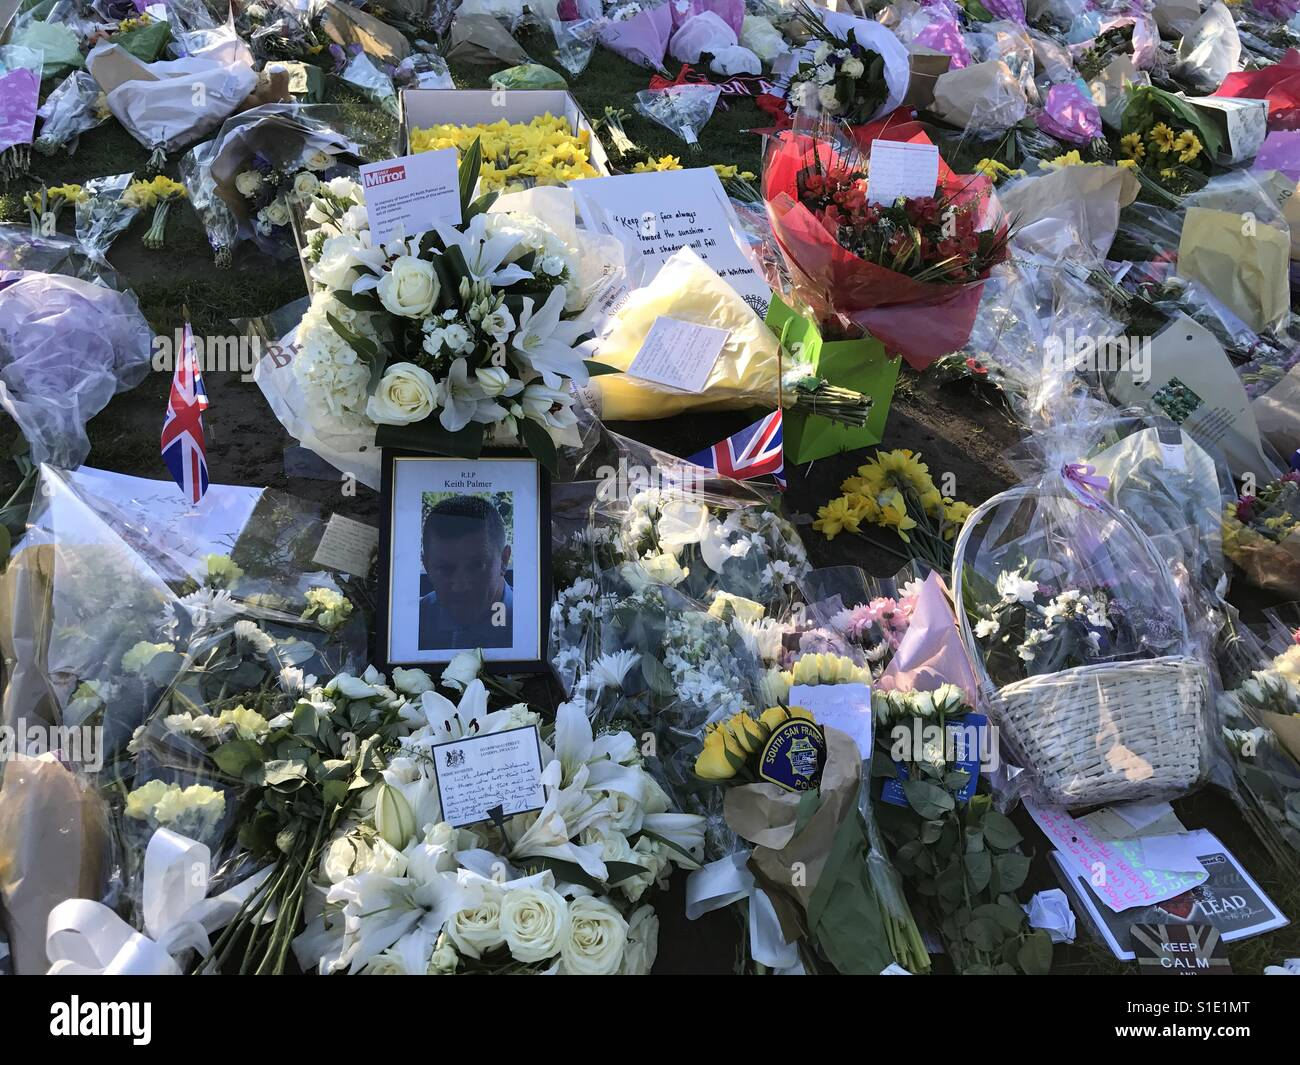 Flowers And Cards Outside Parliament Mourning for London Terrorist Attack - Stock Image